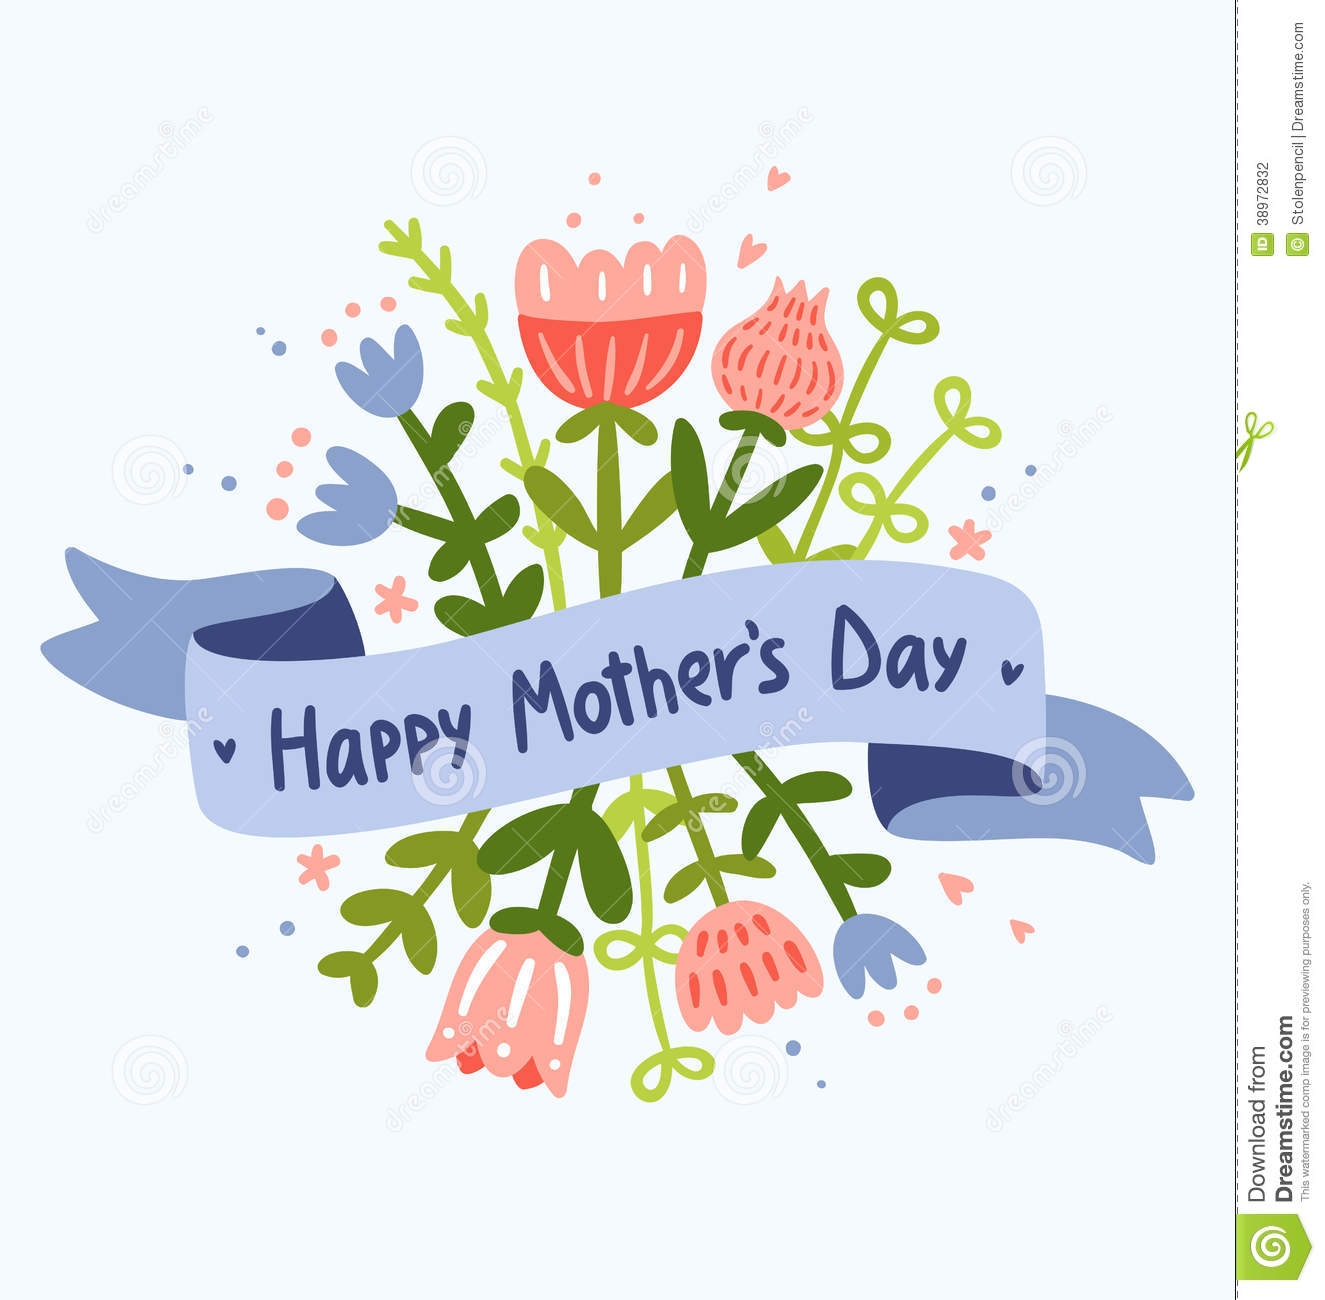 essay happy mother s day